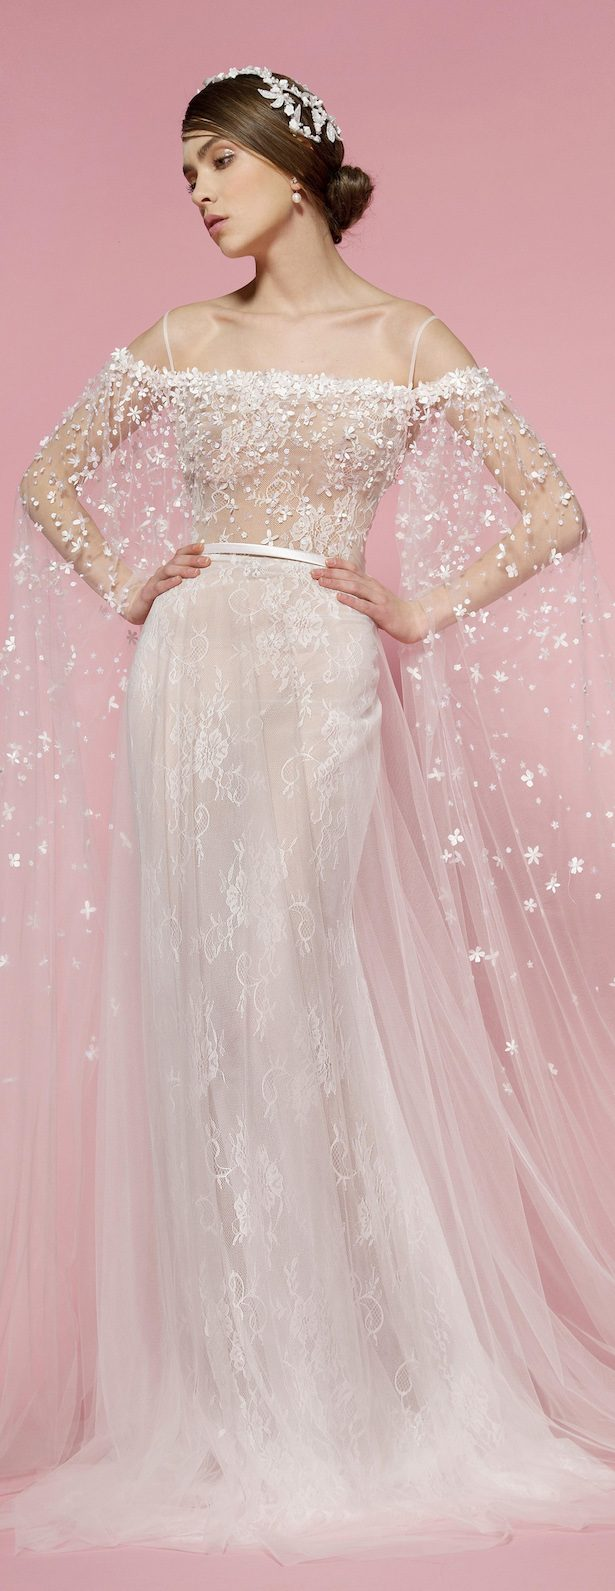 Georges Hobeika Bridal 2018 Belle The Magazine Interiors Inside Ideas Interiors design about Everything [magnanprojects.com]